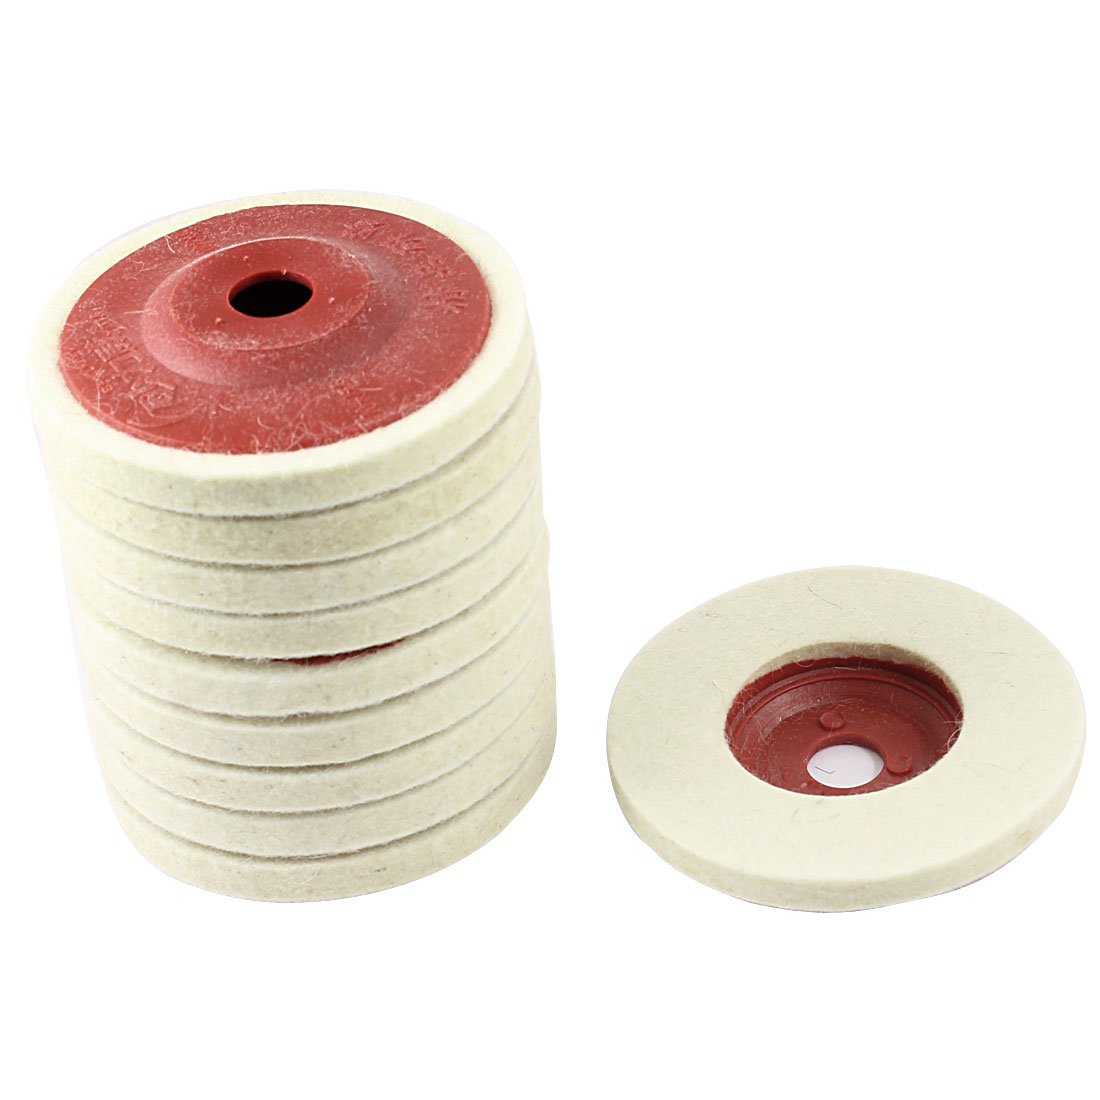 uxcell 10 Pcs 100mm Outer Dia Metal Polishing Grinding Wheel Disc Red Beige